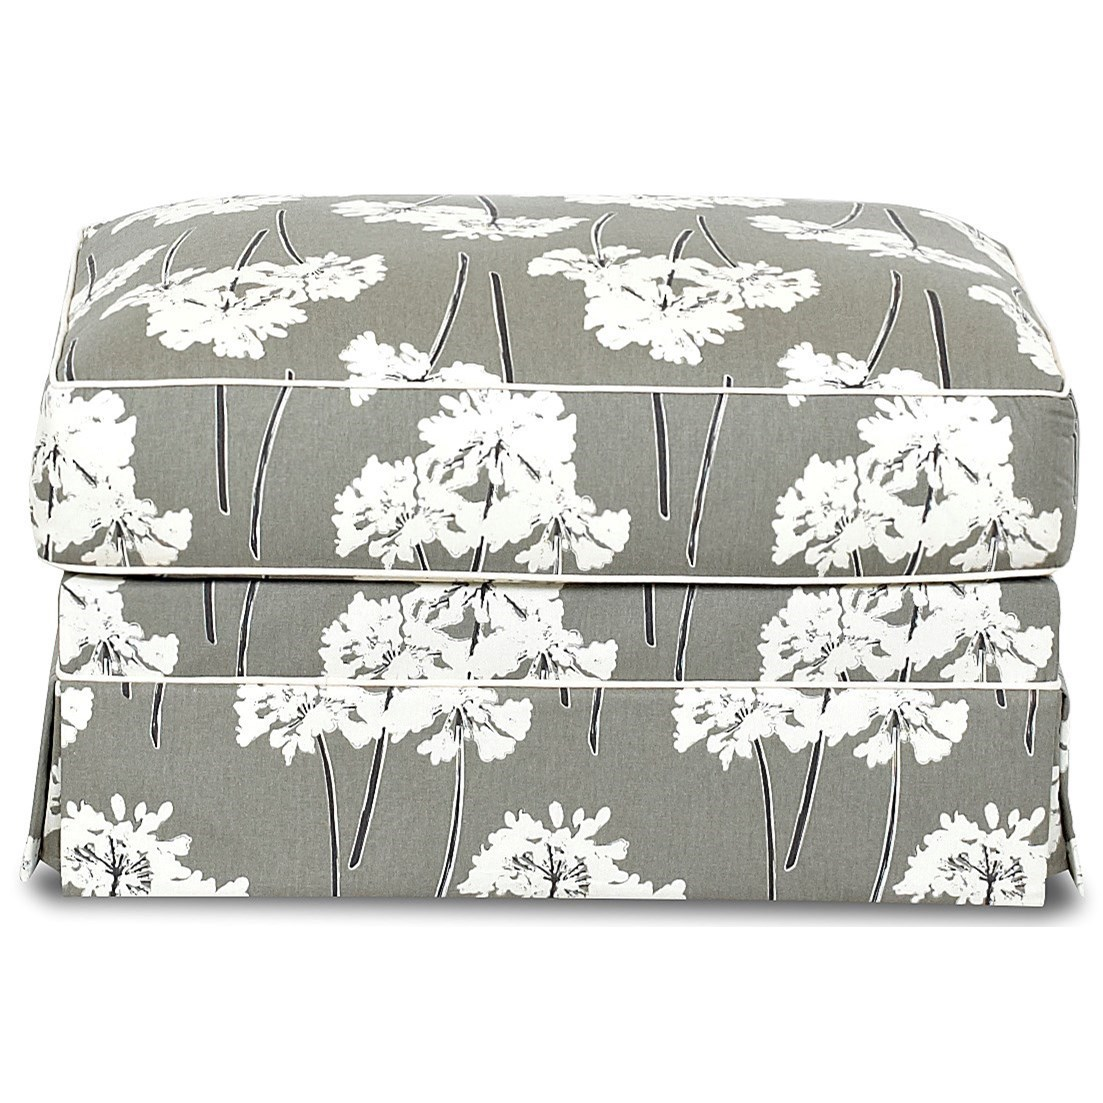 Jenny Ottoman by Klaussner at Lapeer Furniture & Mattress Center